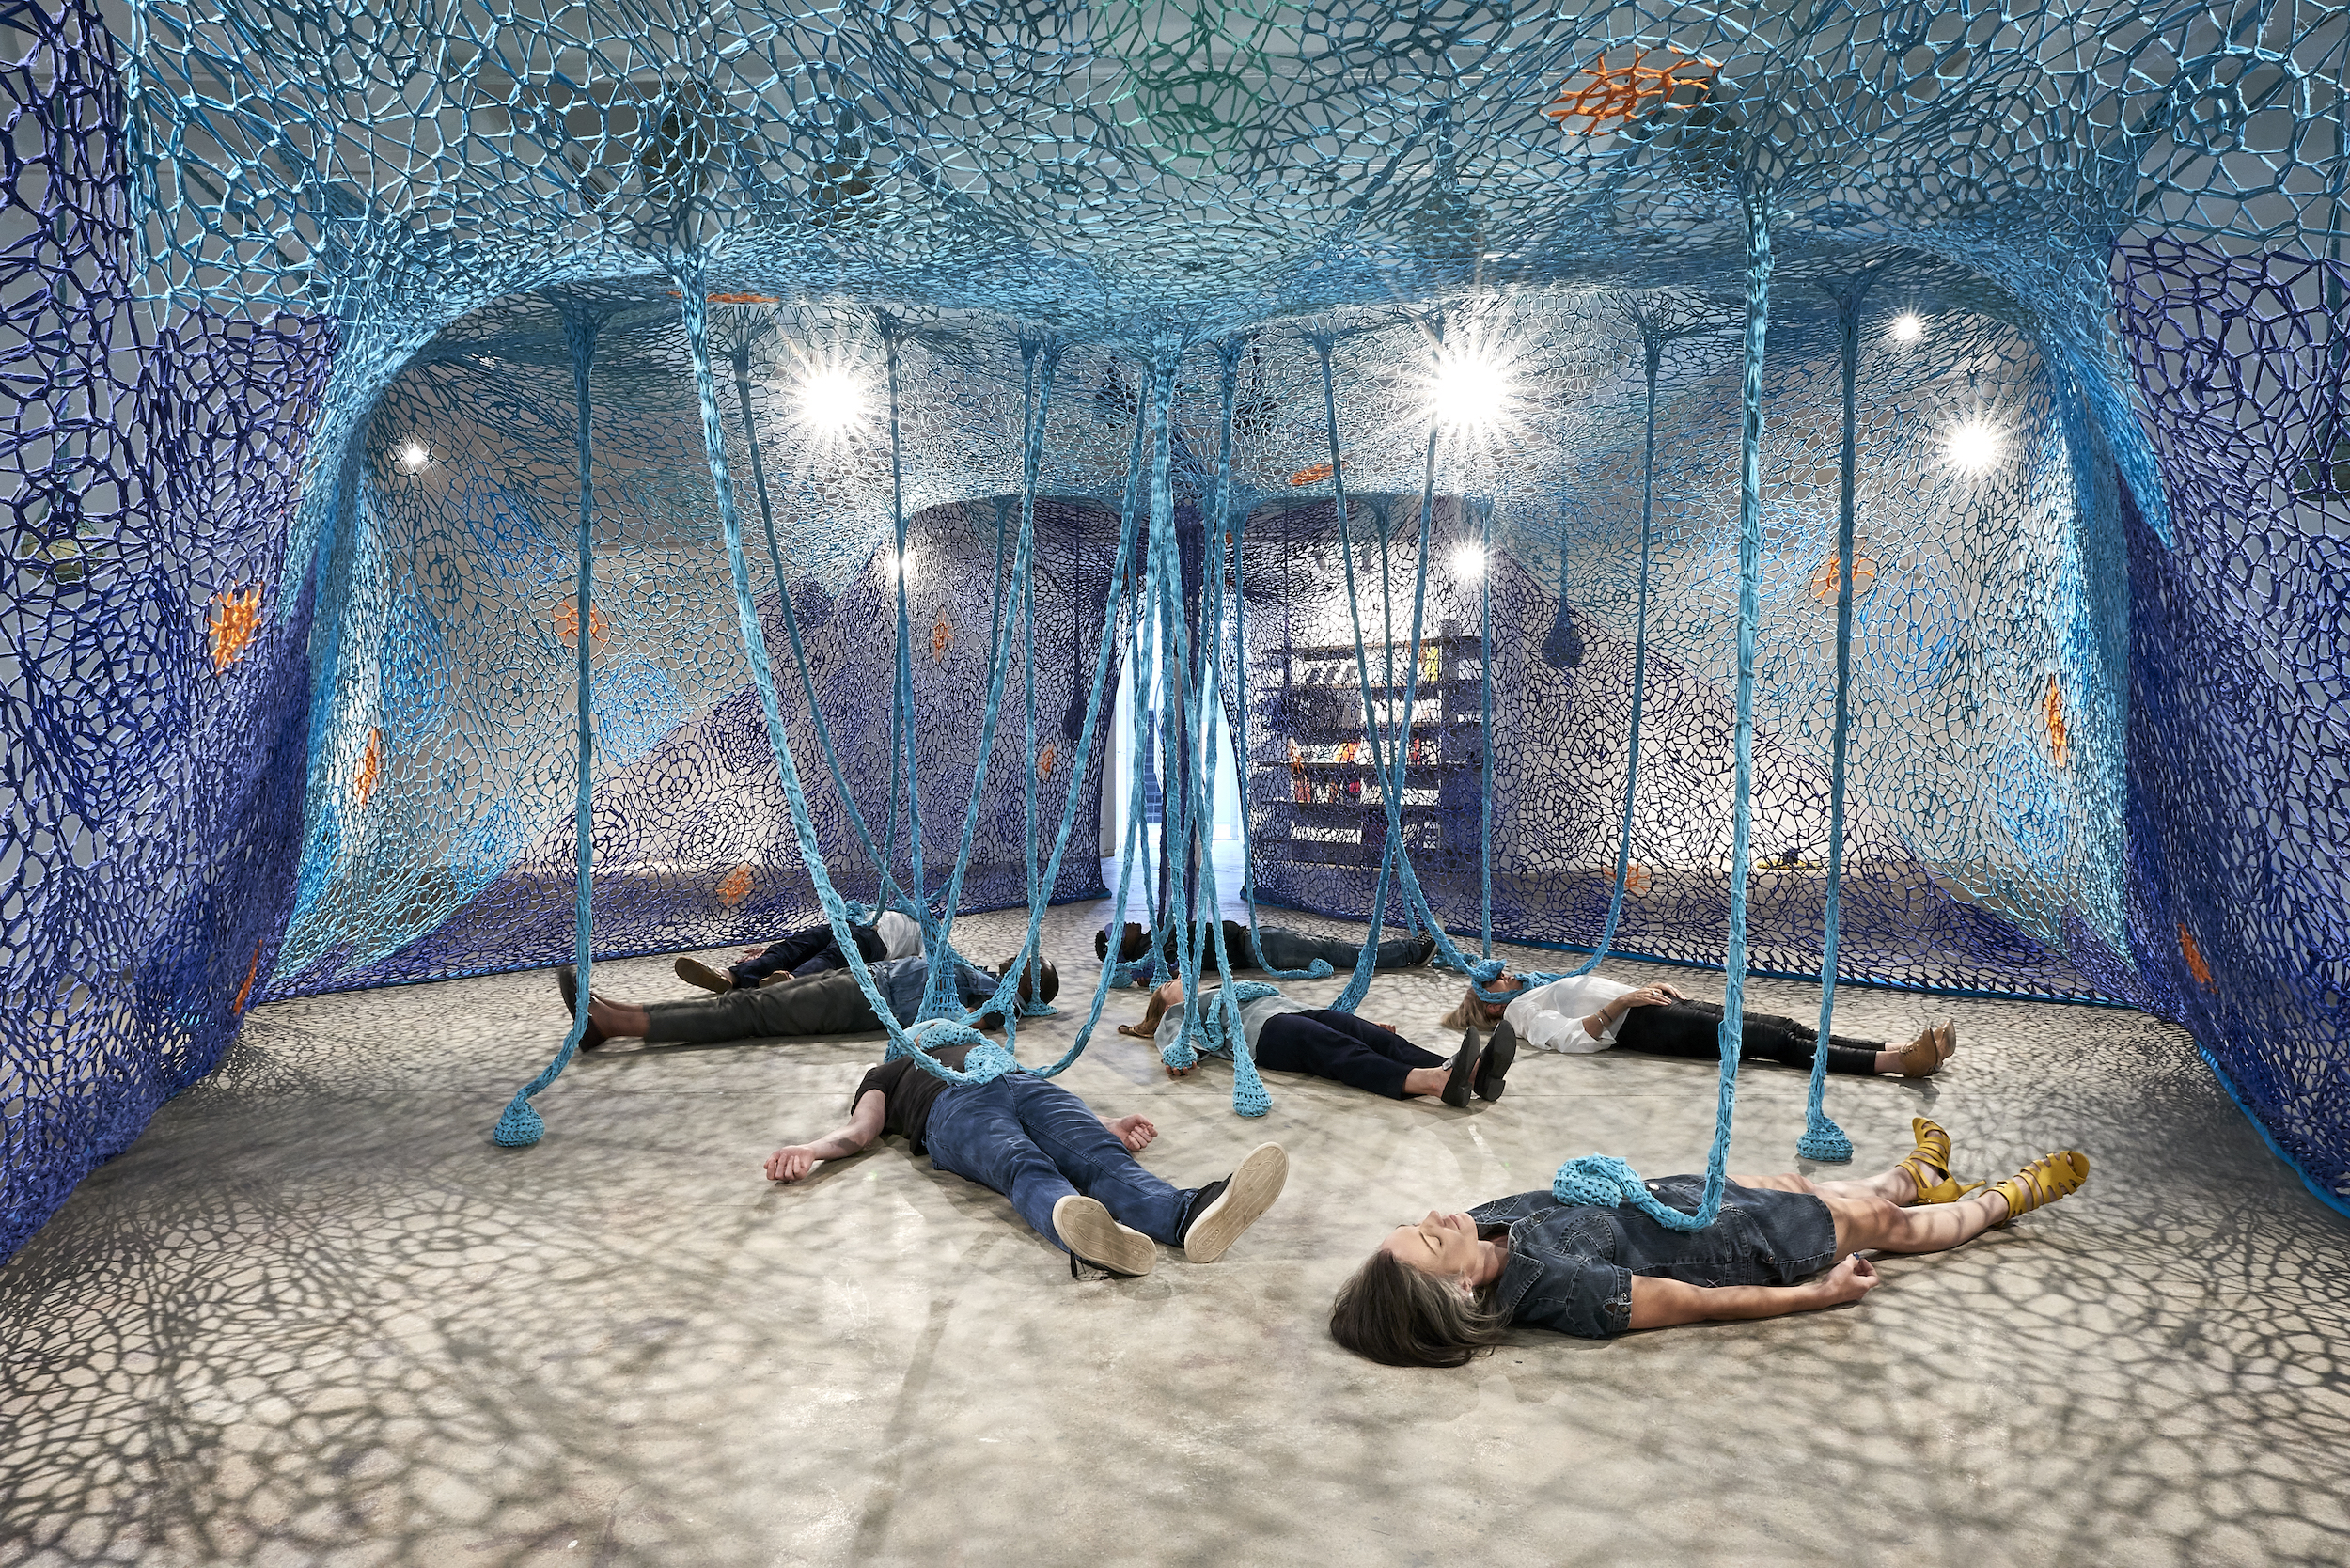 African Art World - Ernesto Neto, One Day We Were All Fish and The Earth's Belly, 2019. Courtesy of Goodman Gallery and South South